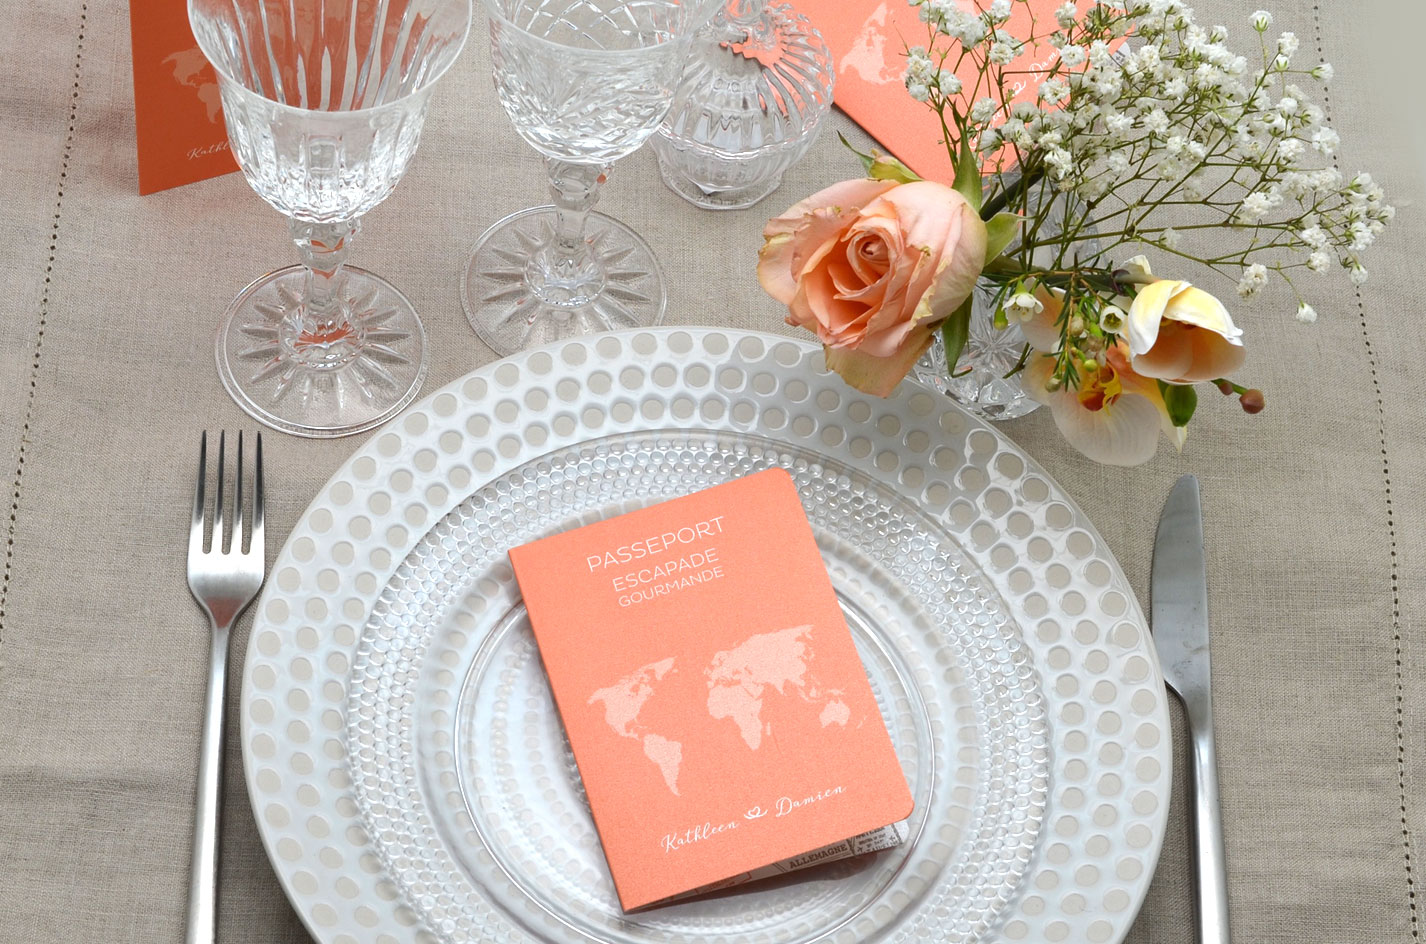 Menu mariage passeport marque place mariage - Marque place mariage champetre ...